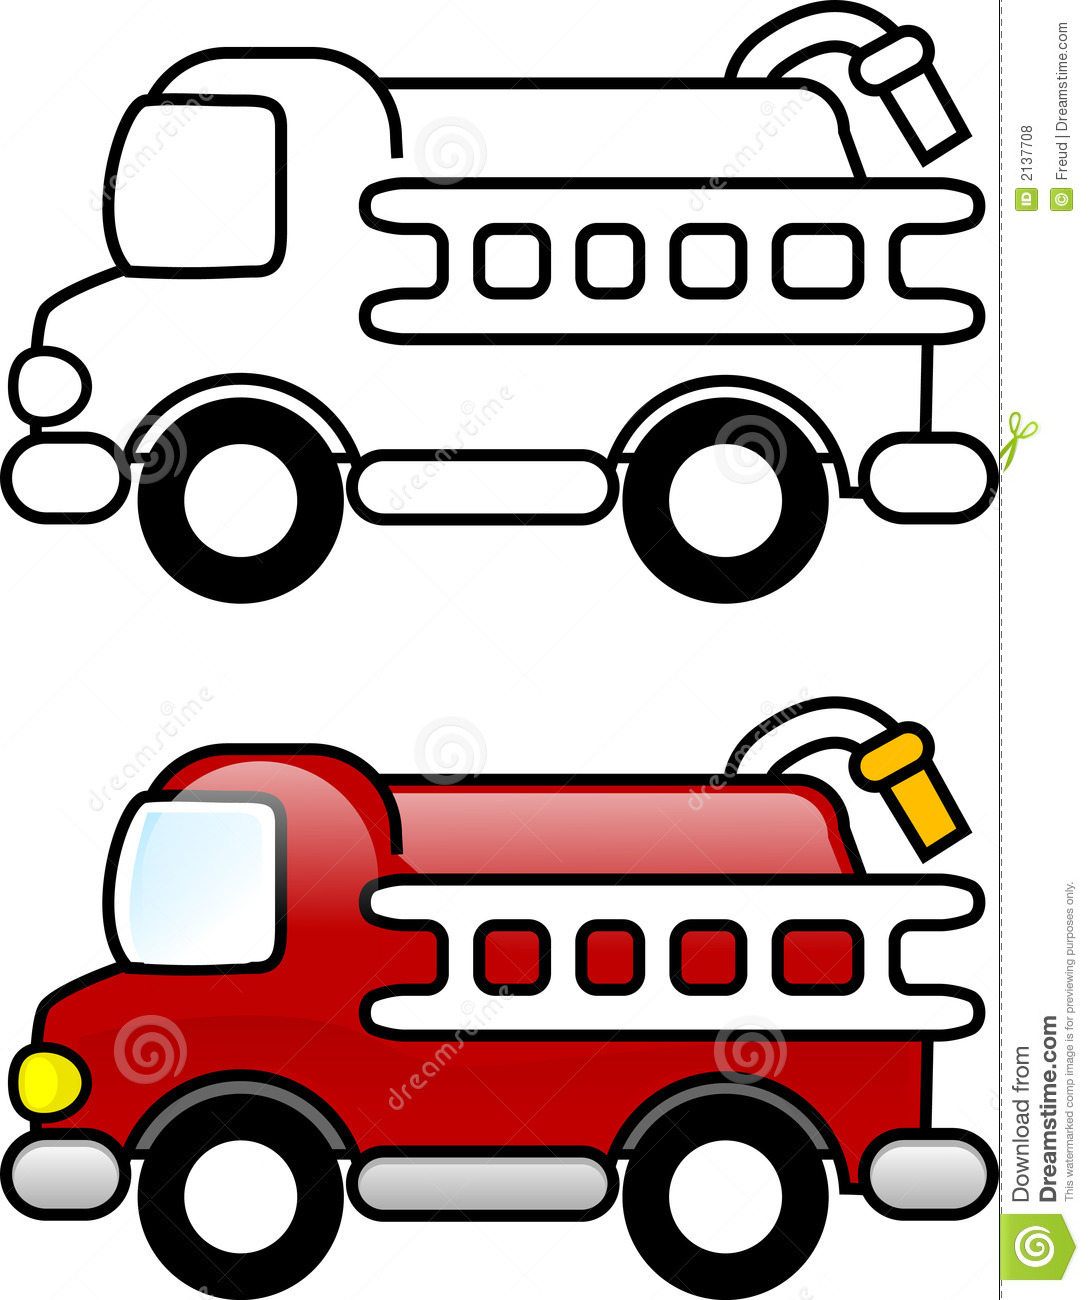 Firetruck coloring pages for kids, printable free | coloing-4kids.com | 1300x1089